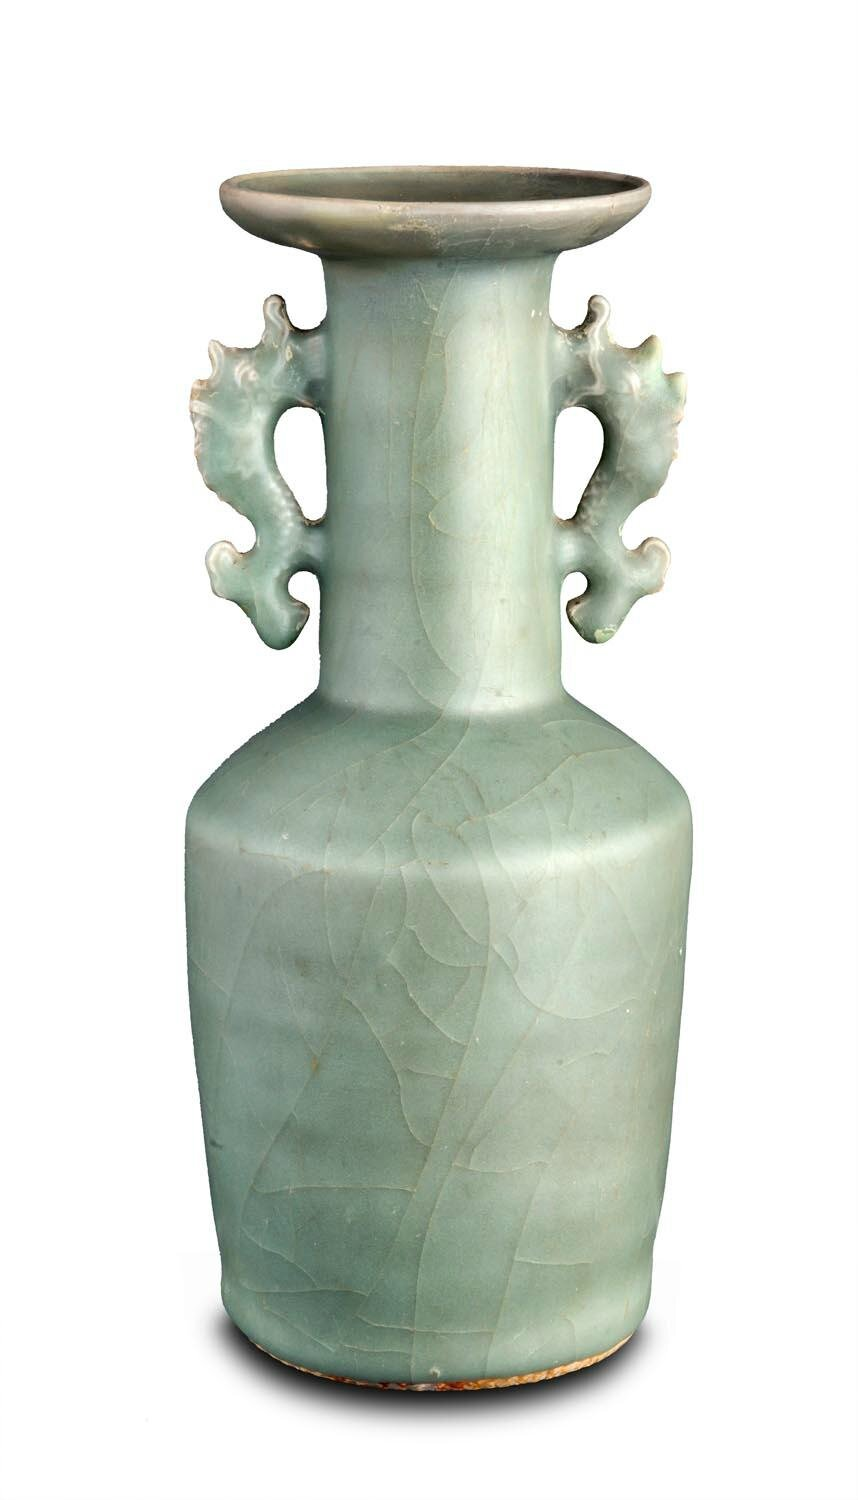 A large Longquan mallet vase, Yuan dynasty (1271-1368)